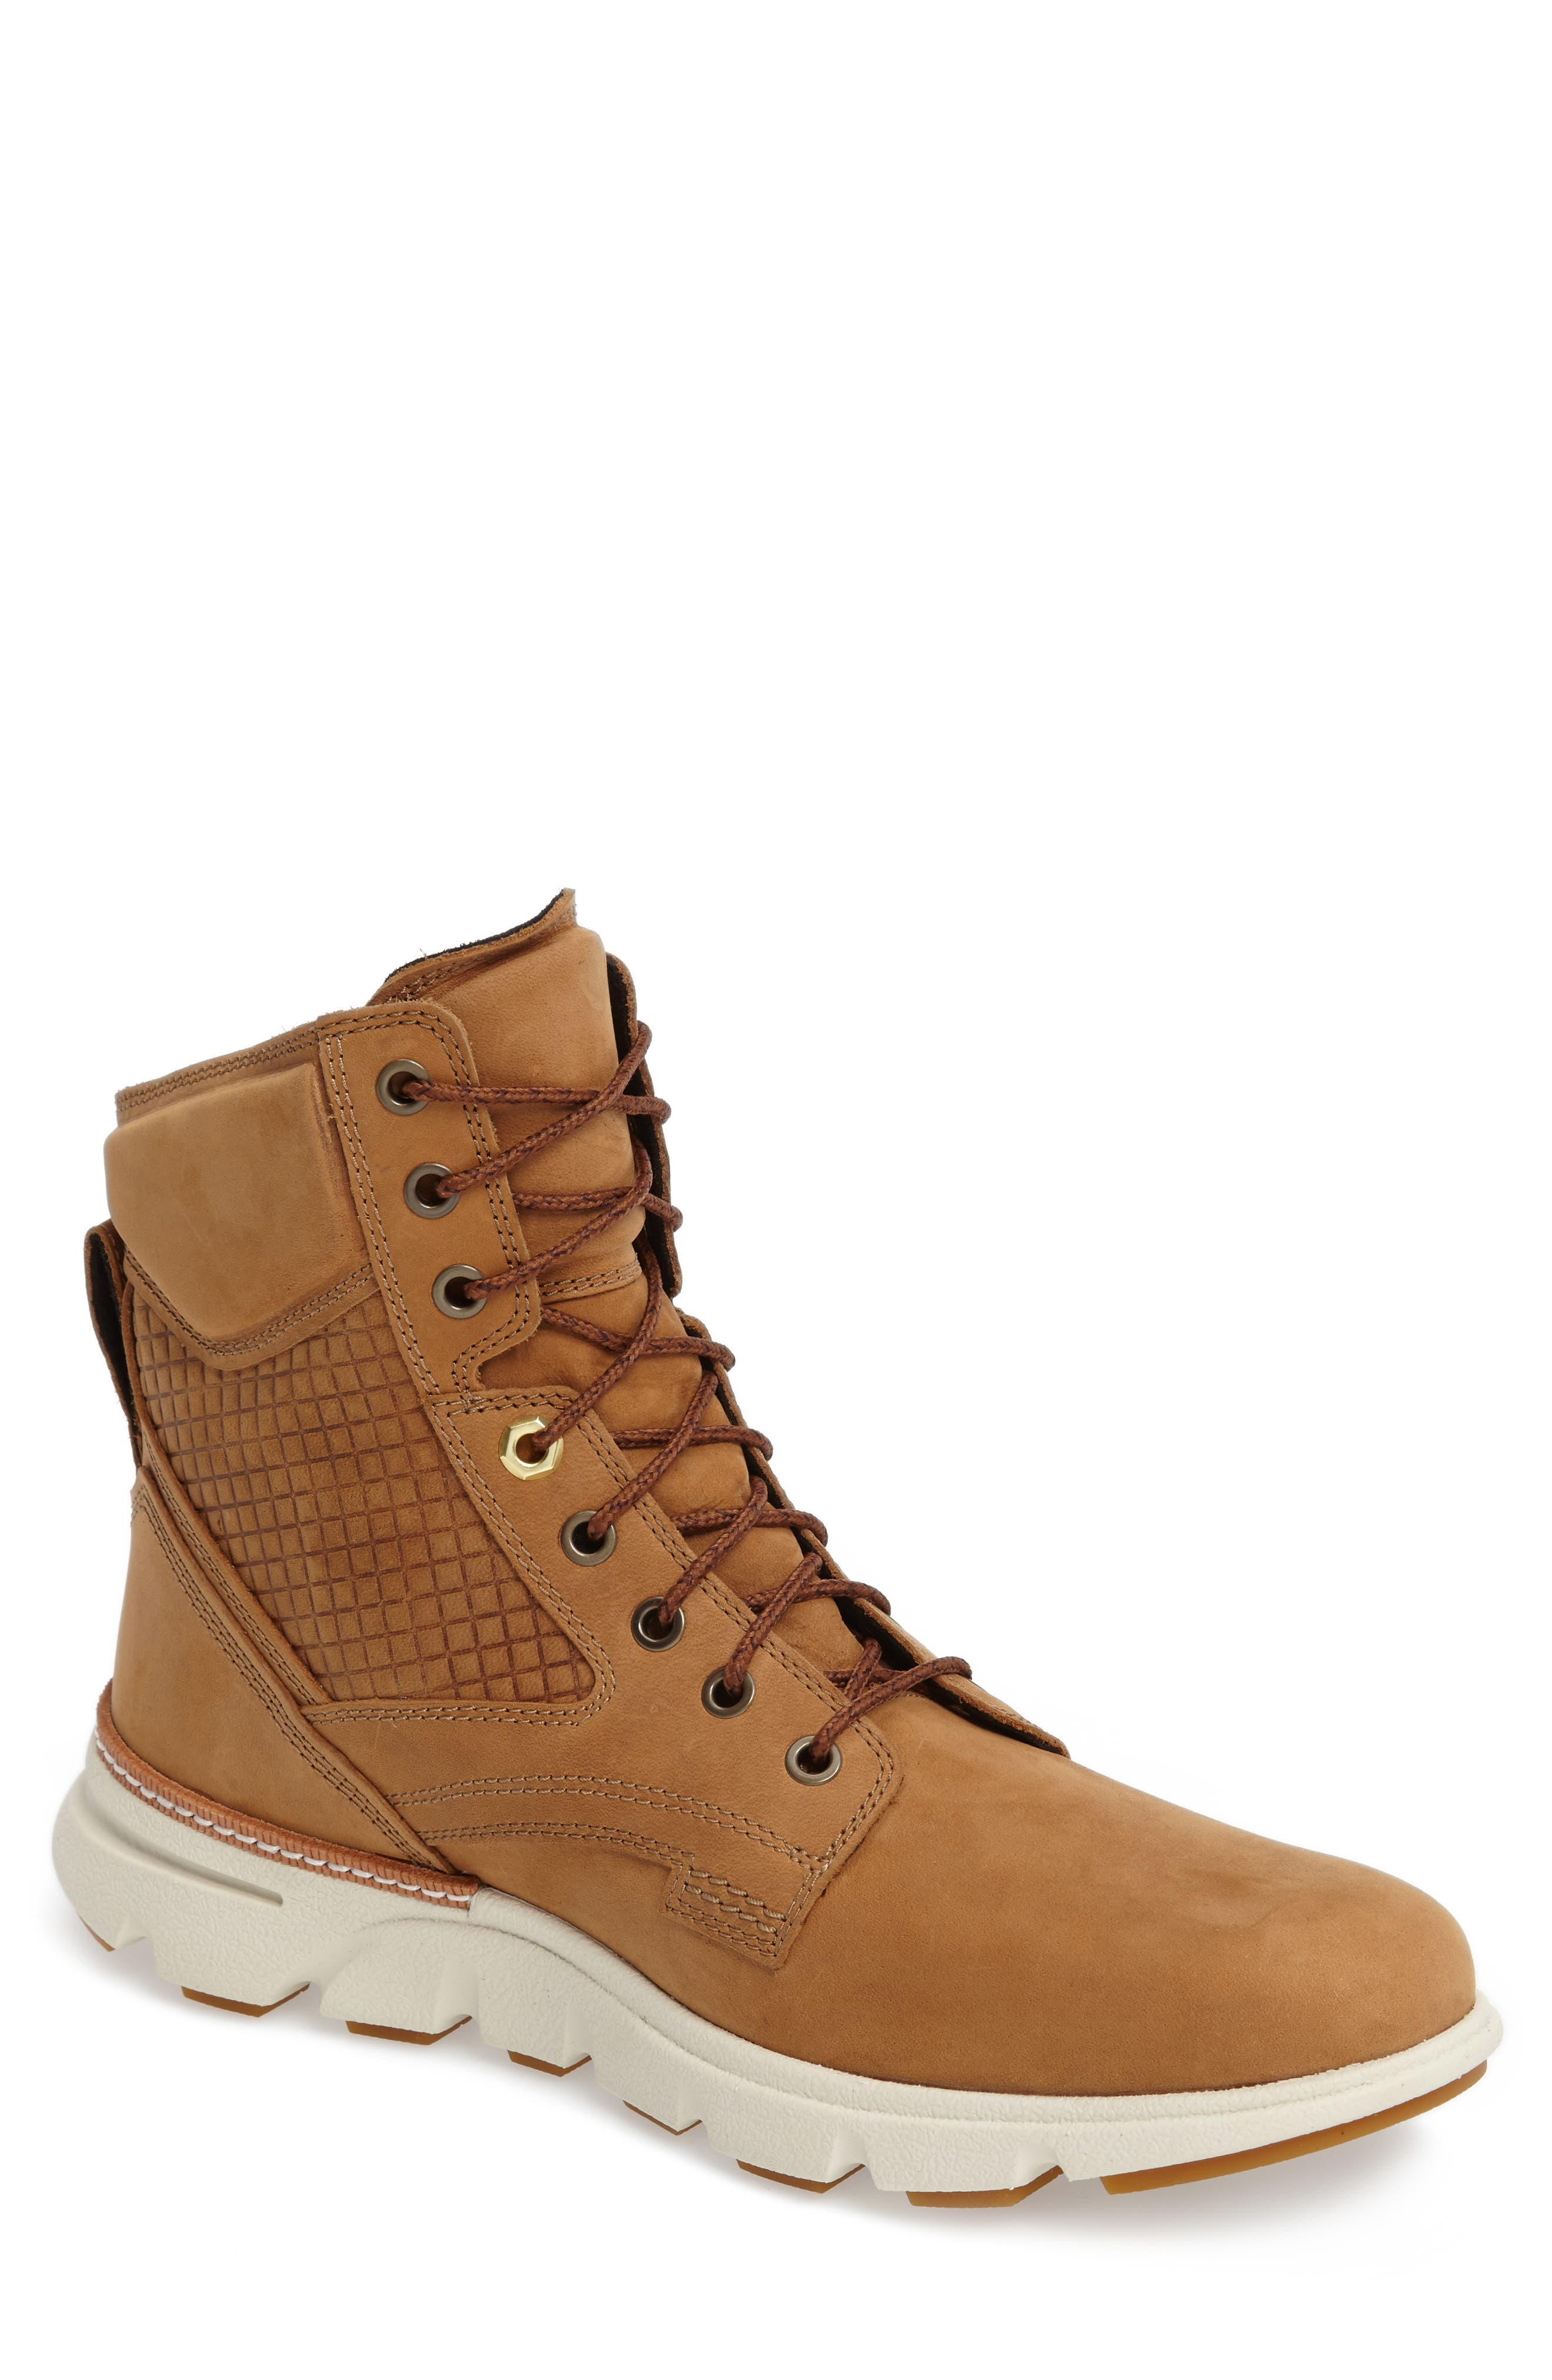 Alternate Image 1 Selected - Timberland Eagle Lace-Up Boot (Men)